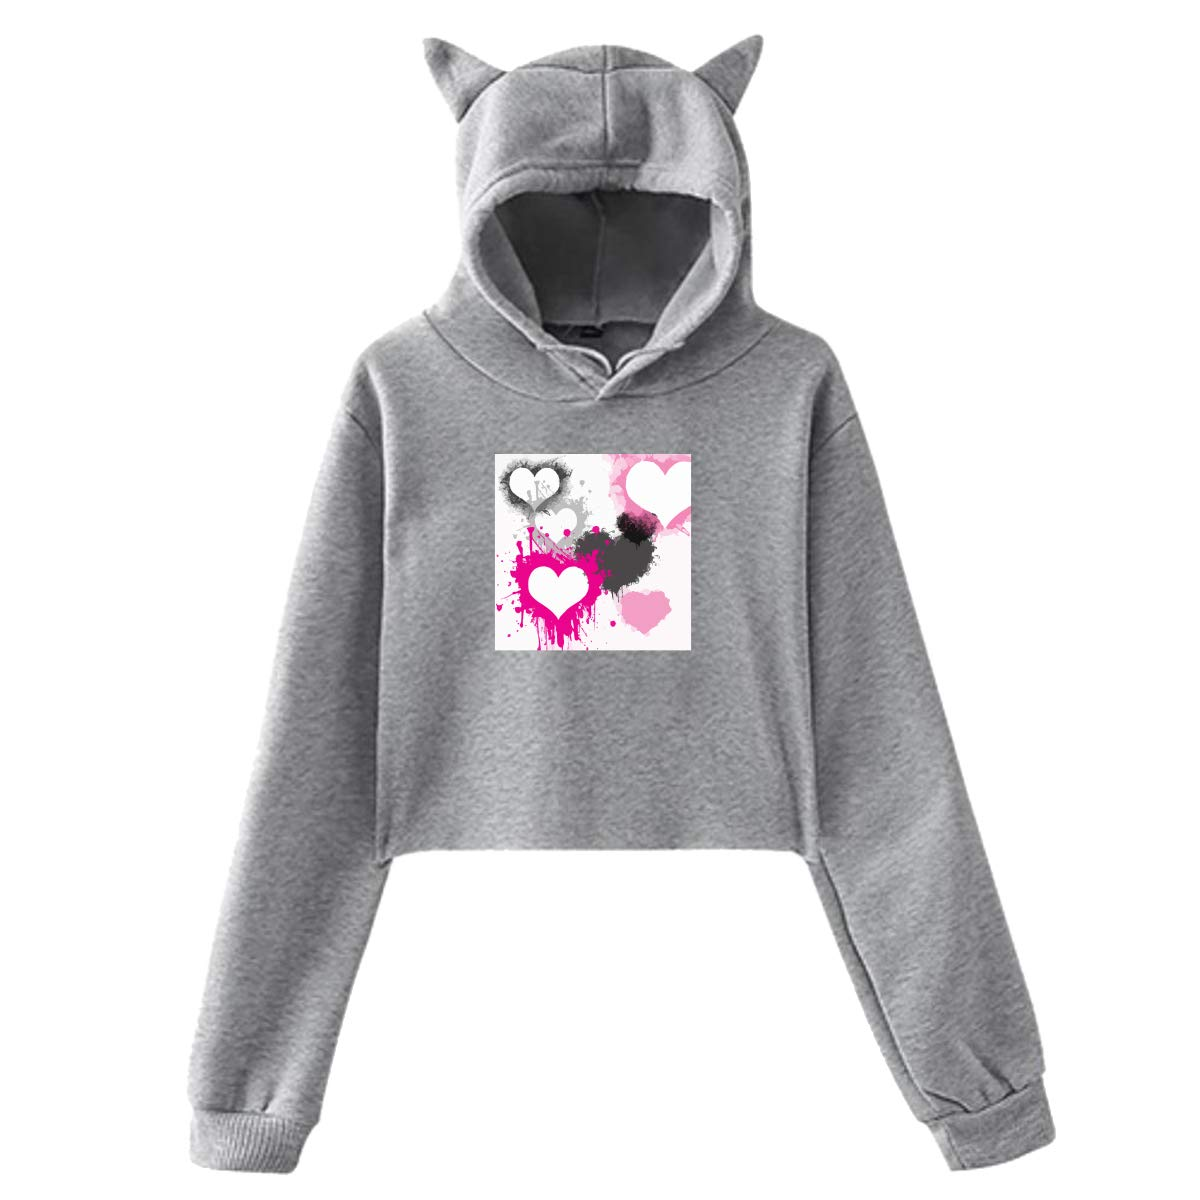 Personality Girl Cat Ears Umbilical Hoodie Fashion Sweatshirt Sweater Gray